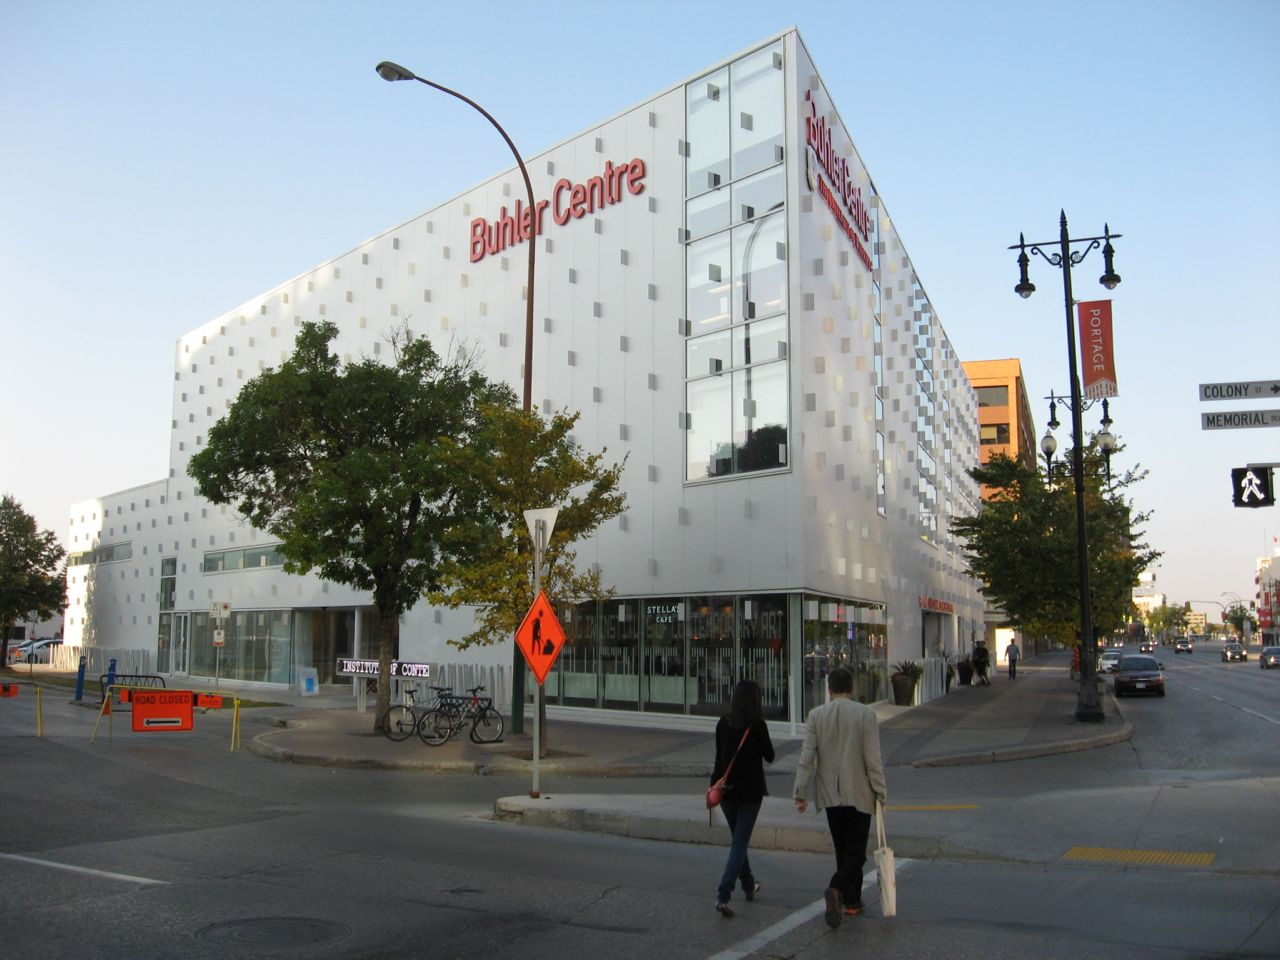 The Buhler Centre is just one of many new University of Winnipeg campus buildings that is changing the face of downtown Winnipeg.  This building is an office building, art gallery and home to Stella Cafe.